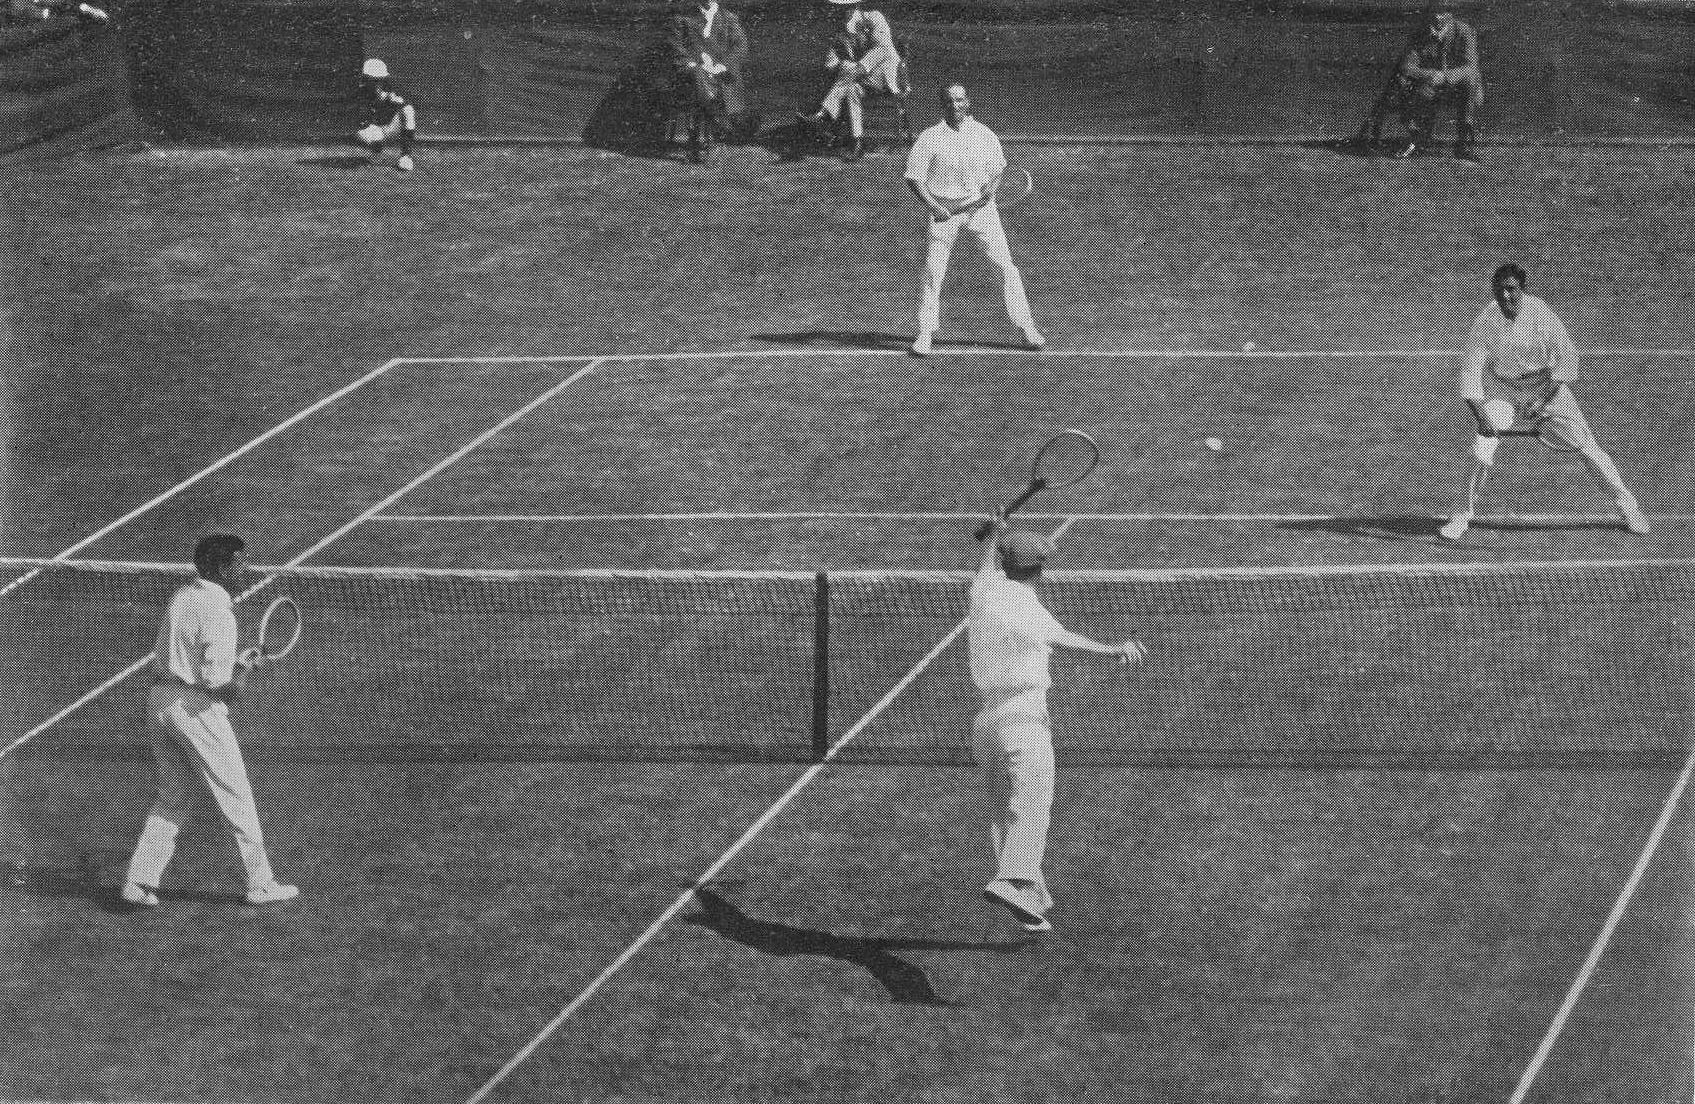 1912 International Lawn Tennis